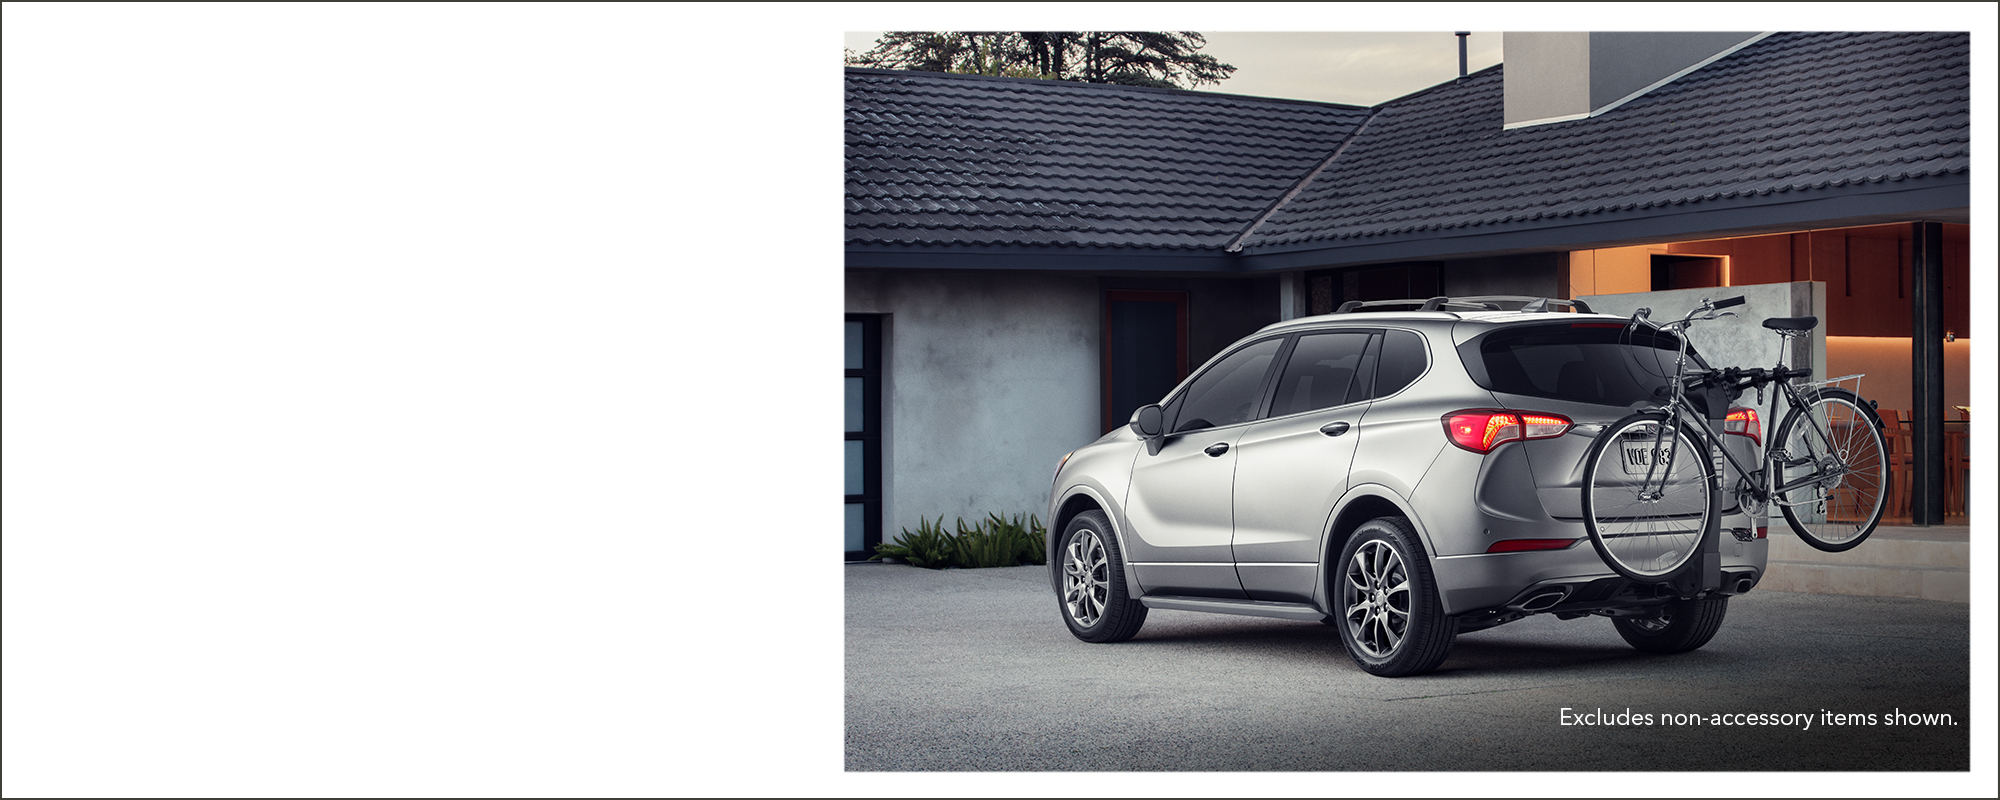 Home | Buick Accessories New 2021 Buick Envision Accessories, Awd, Build And Price